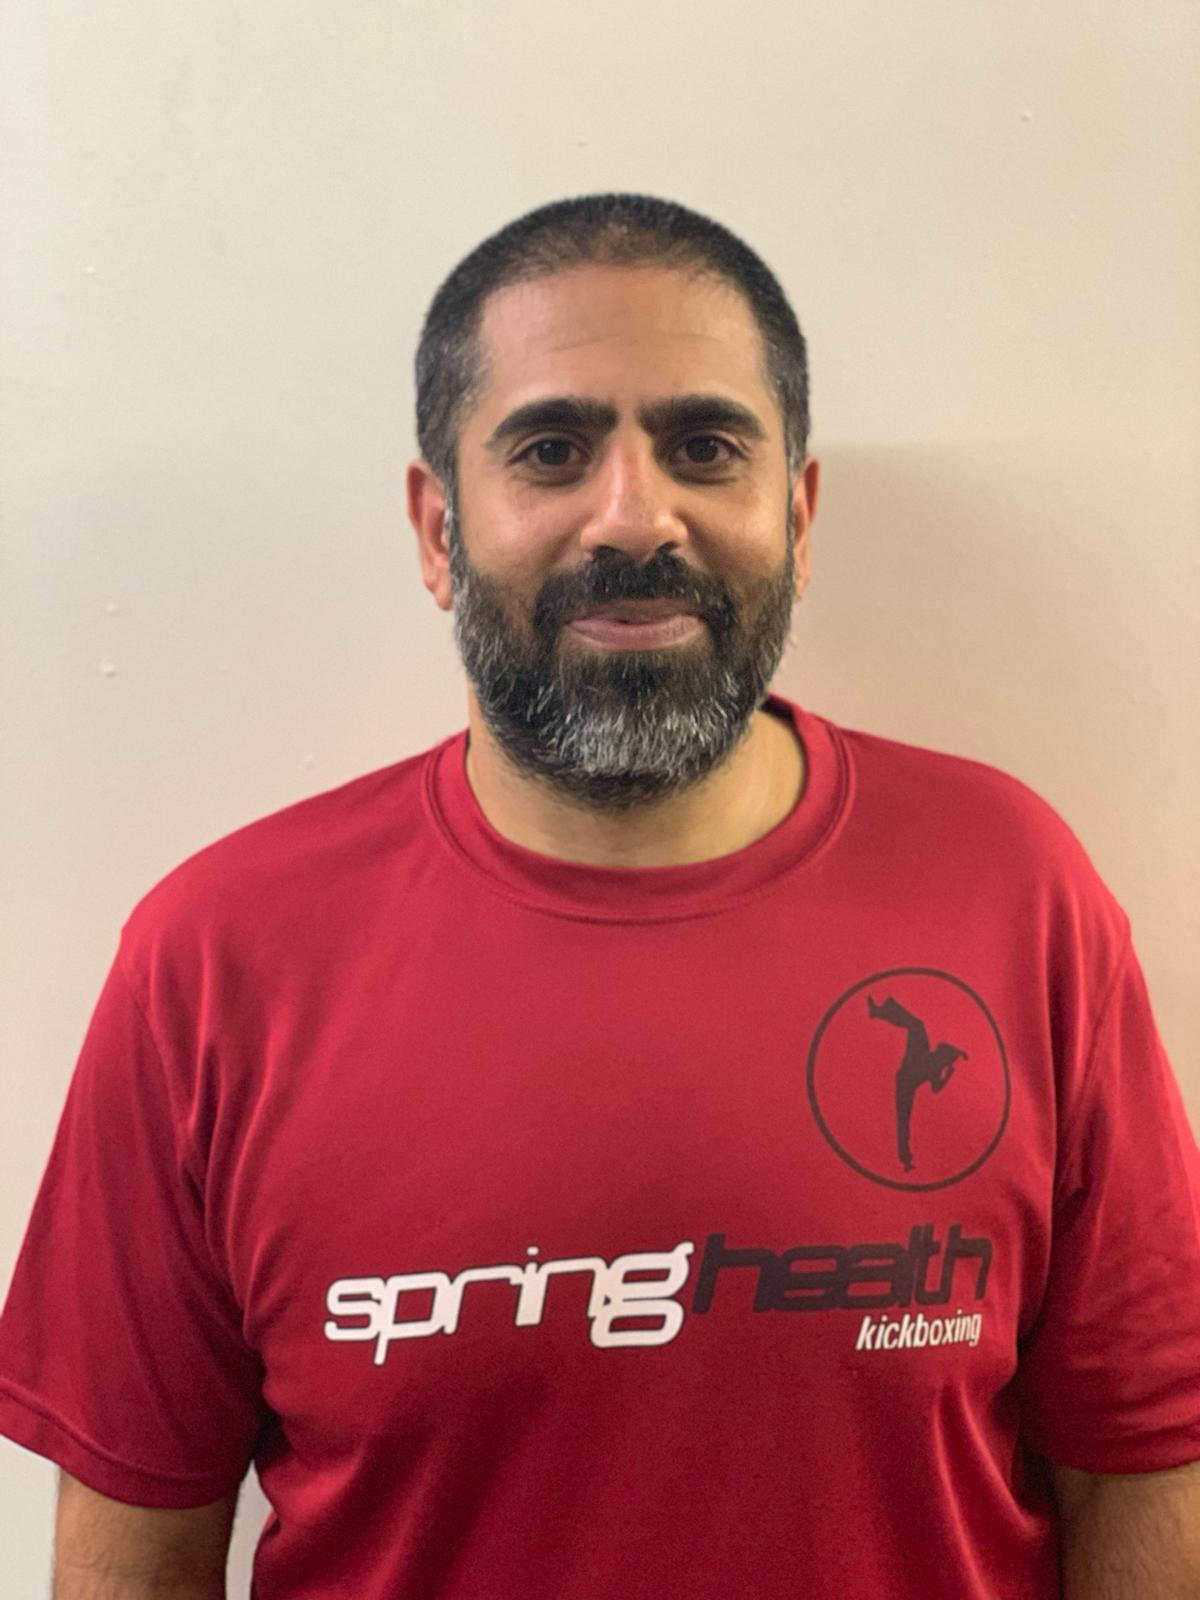 Kaash sethi - Assistant InstructorIf you come to Springhealth, it's likely you know Kaash. Kaash has a big heart, a laid back demeanour and an insatiable appetite for learning and progression. It is this infectious attitude which he passes to all he helps and makes him a key part of the team.